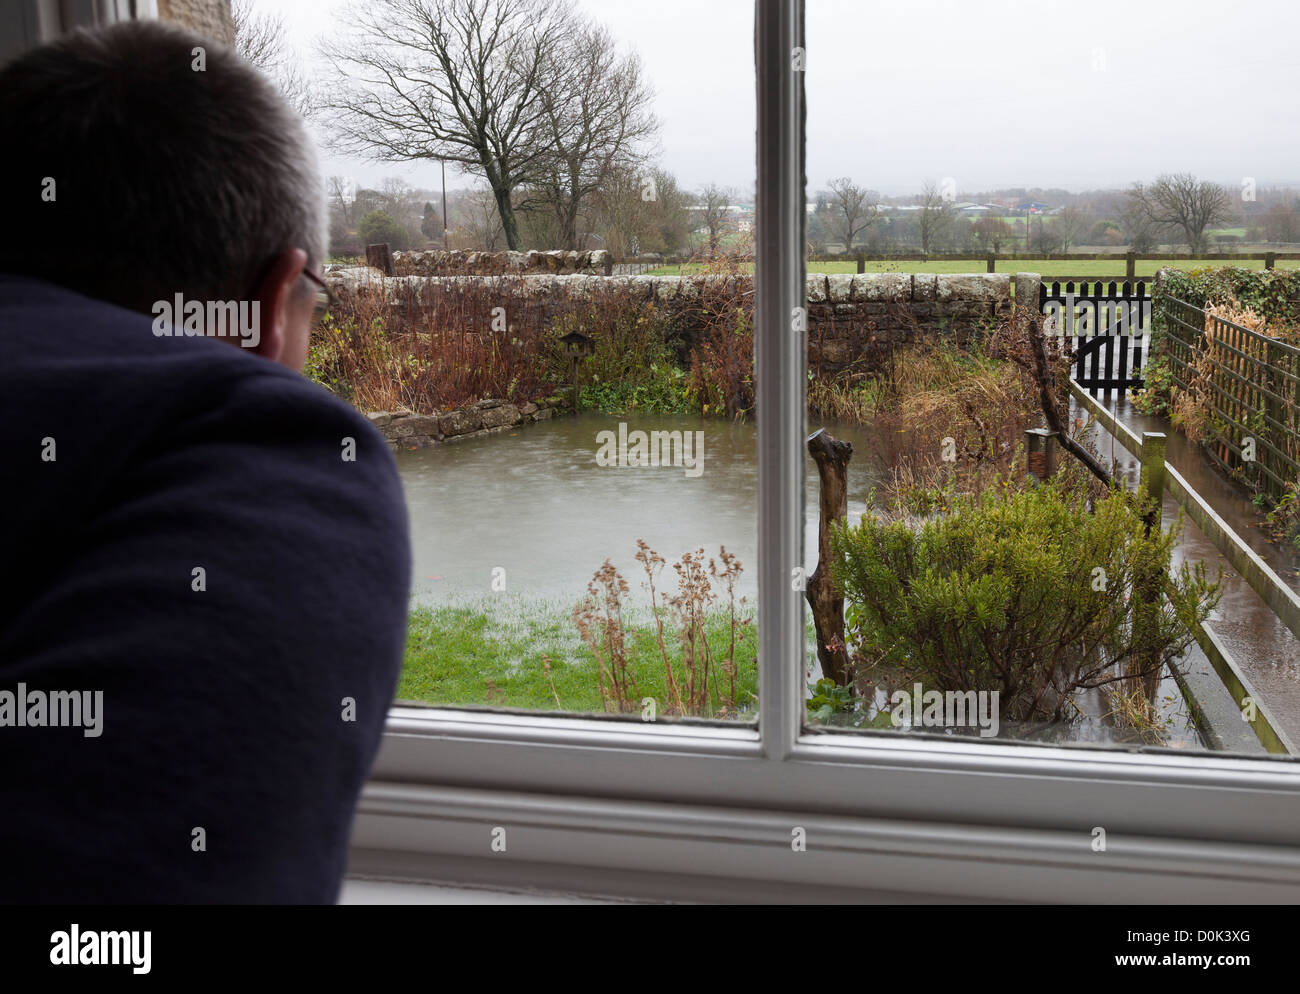 Concerned householder looking out of the window at rising flood water in their garden, County Durham, England UK - Stock Image